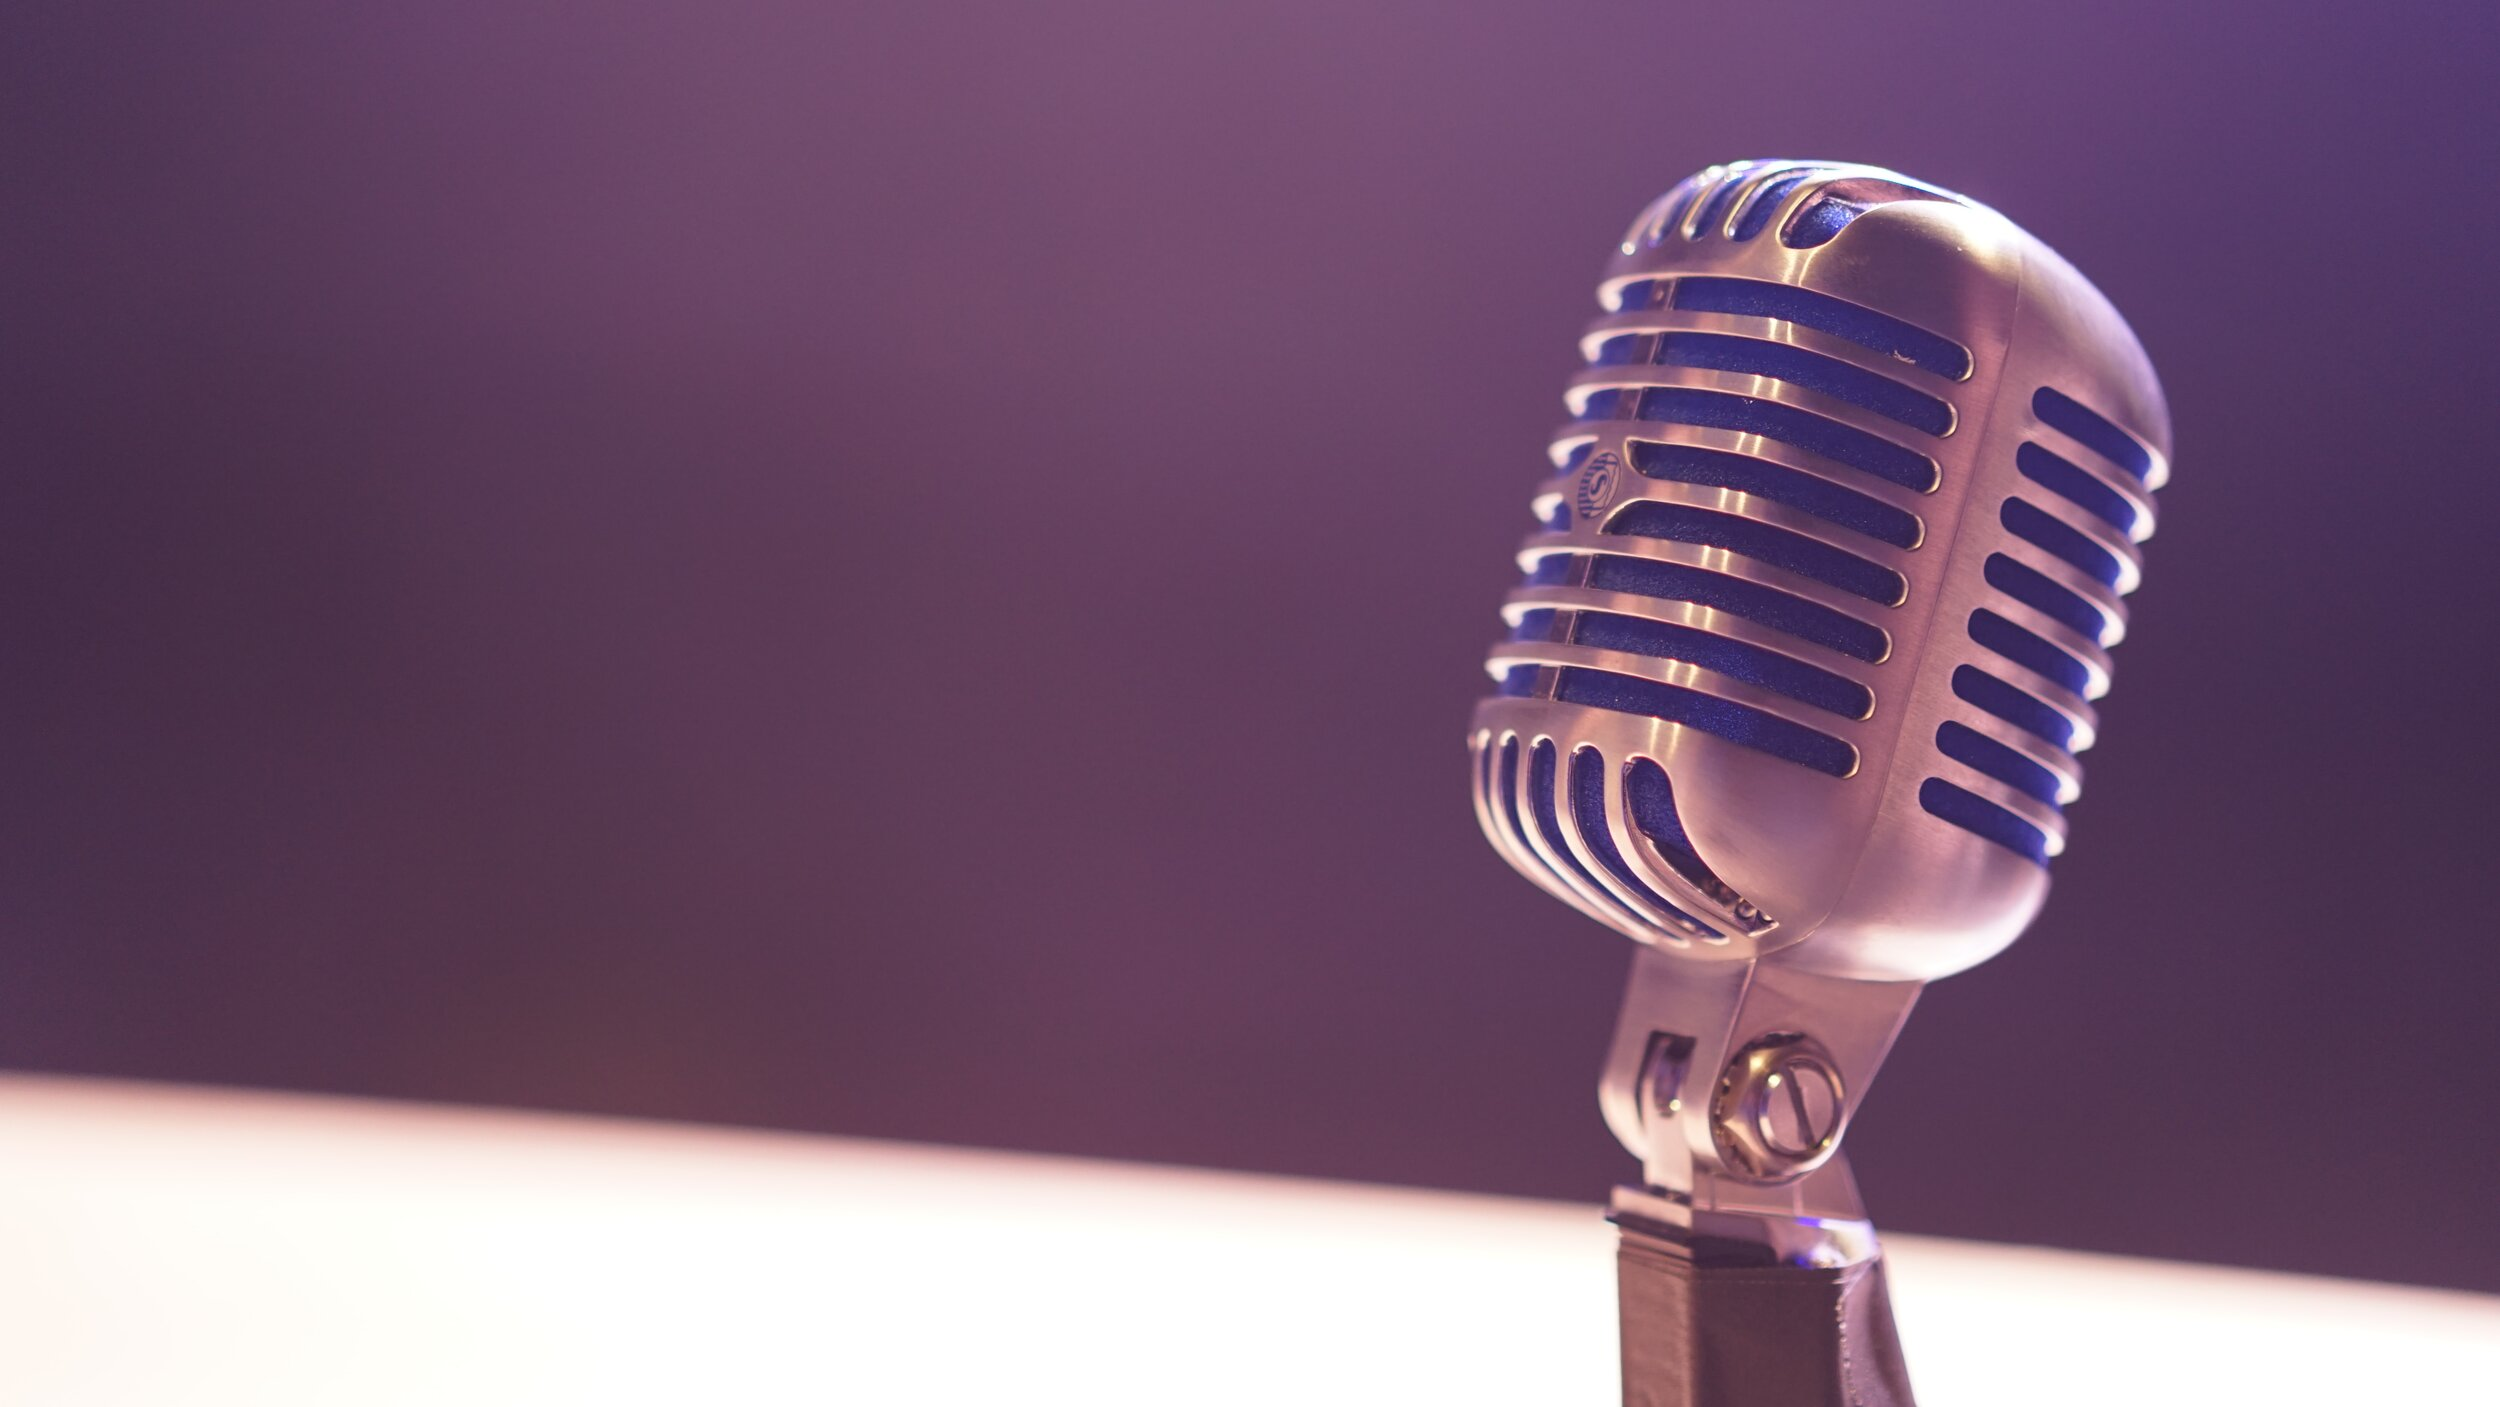 Podcasts - According to a study by Edison Research, 39 million Americans listen to podcasts every month, enjoying six shows per week, on average. Here is a round up of our favorite audio productions.